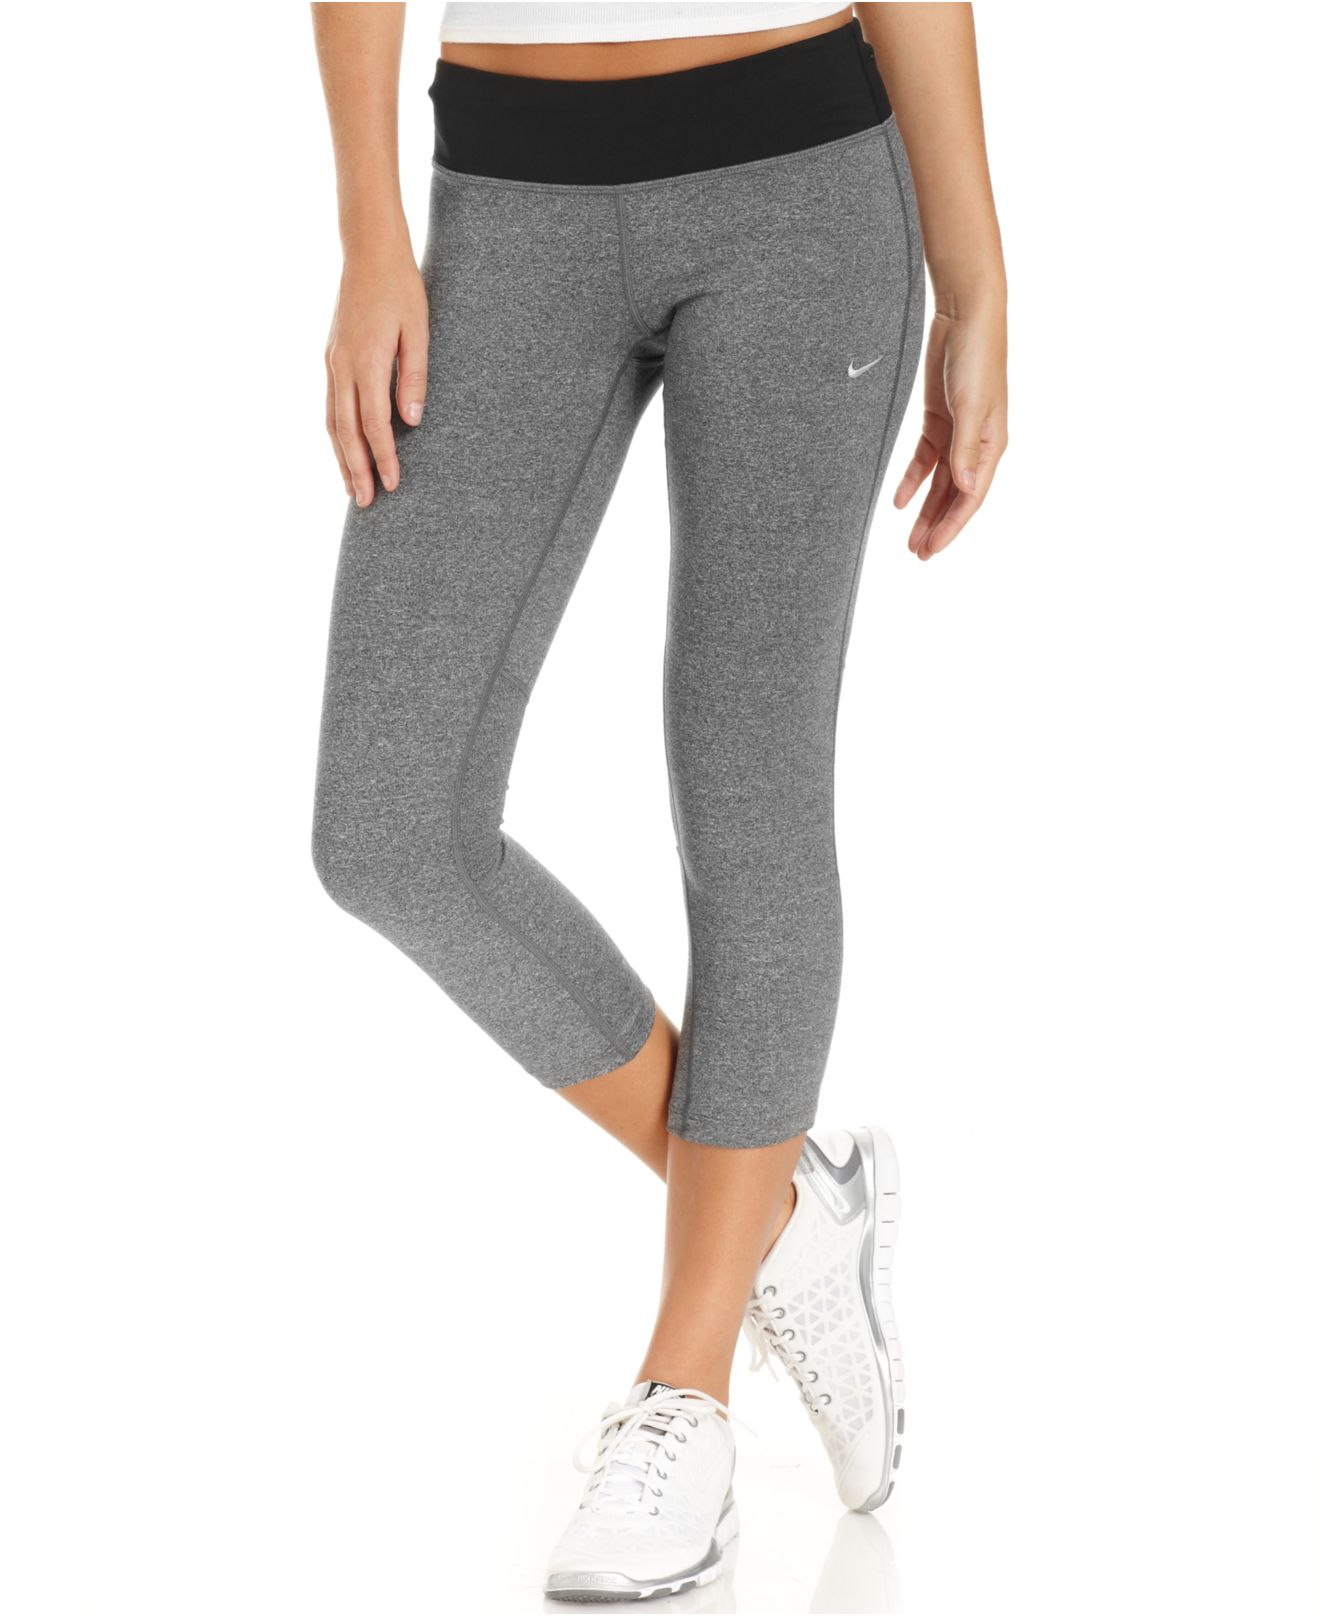 Nike Epic Run Capri Leggings in Gray | Lyst